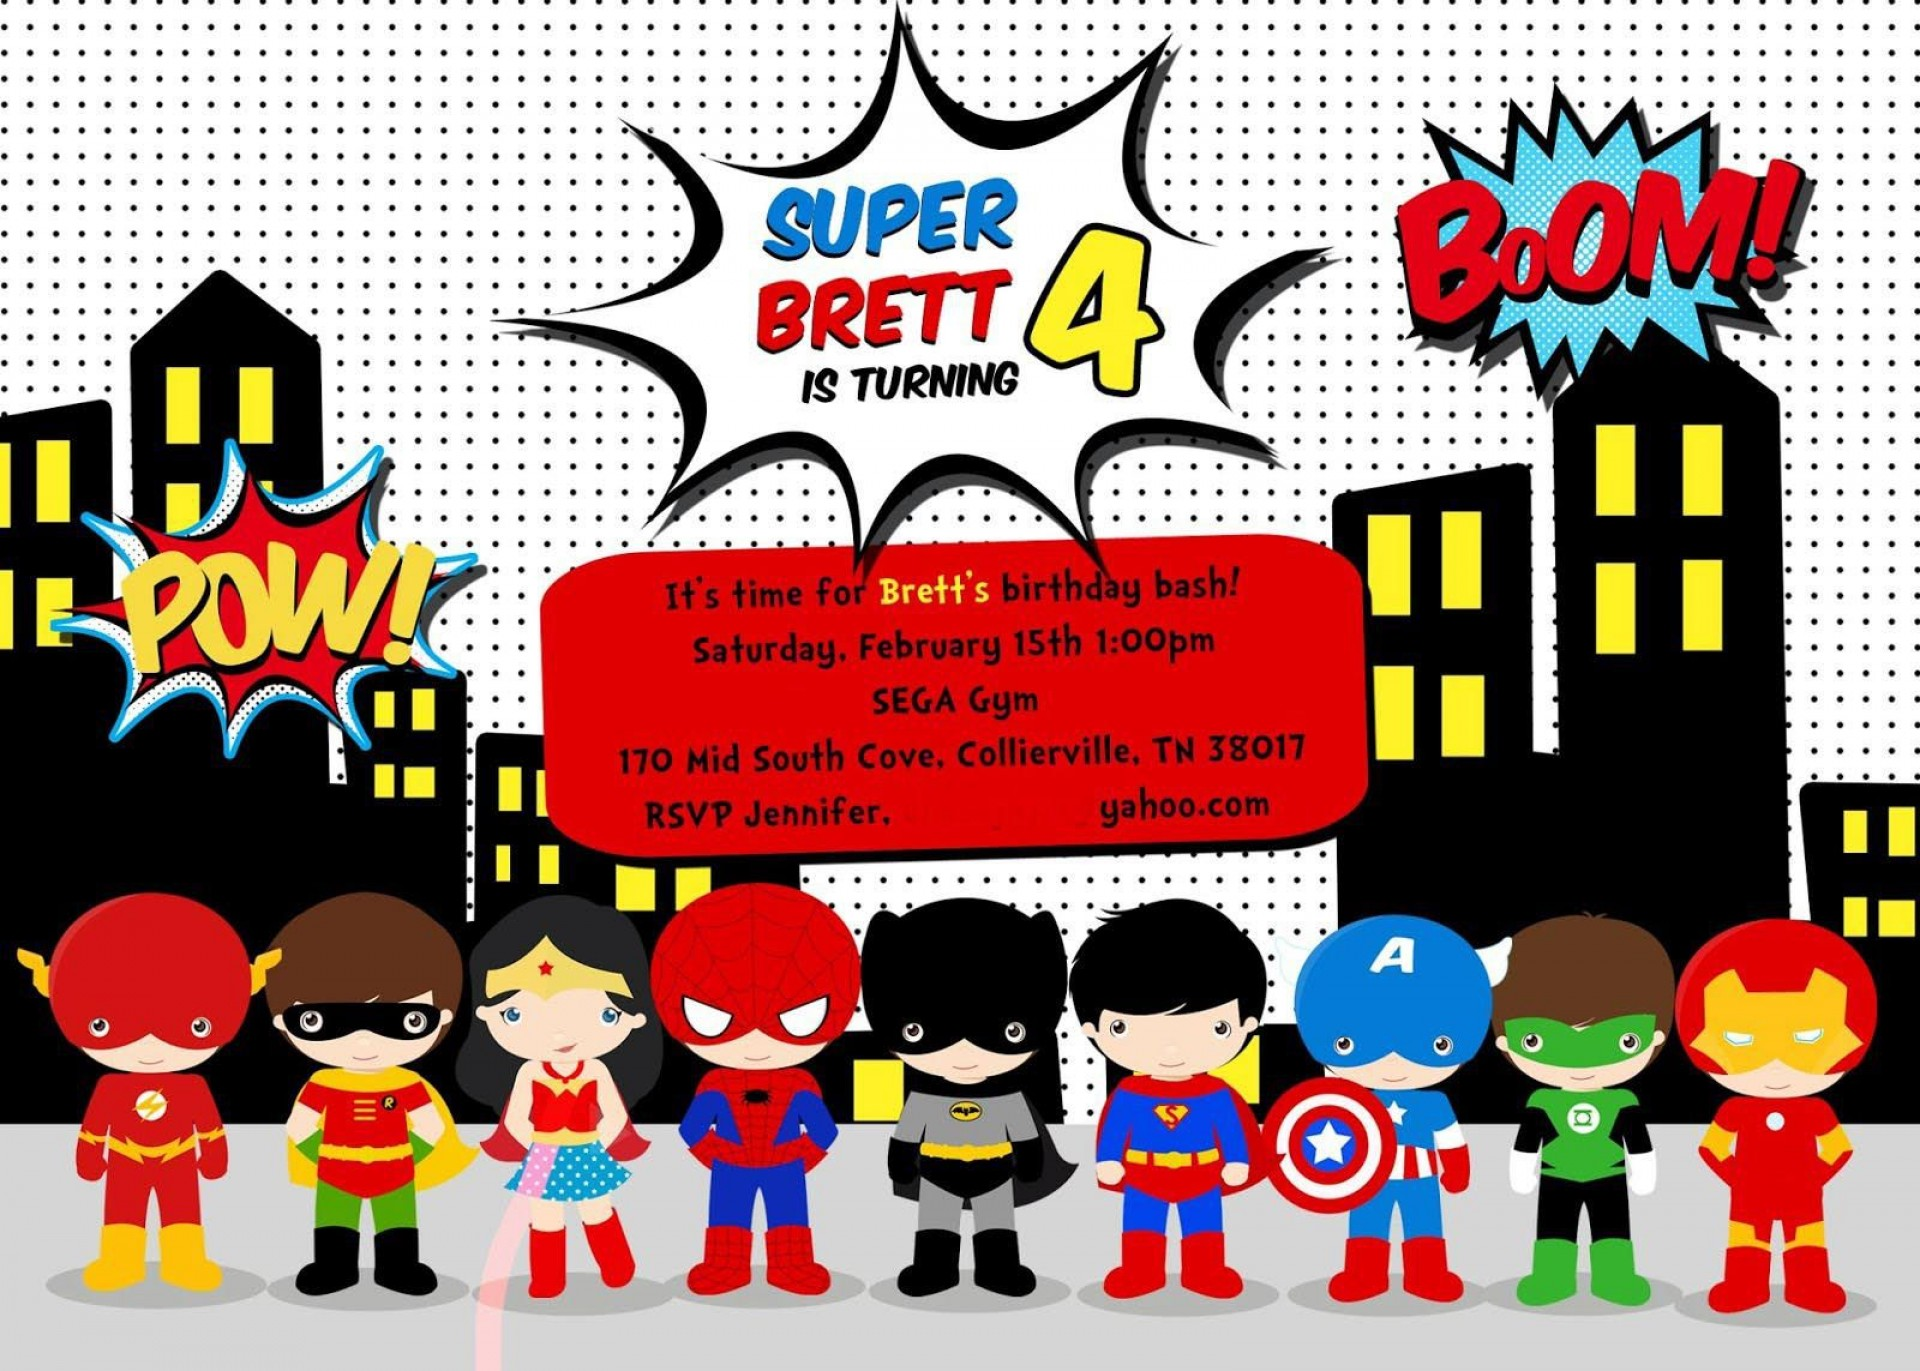 005 Remarkable Superhero Invitation Template Free Highest Clarity  Newspaper Party Birthday Invite1920